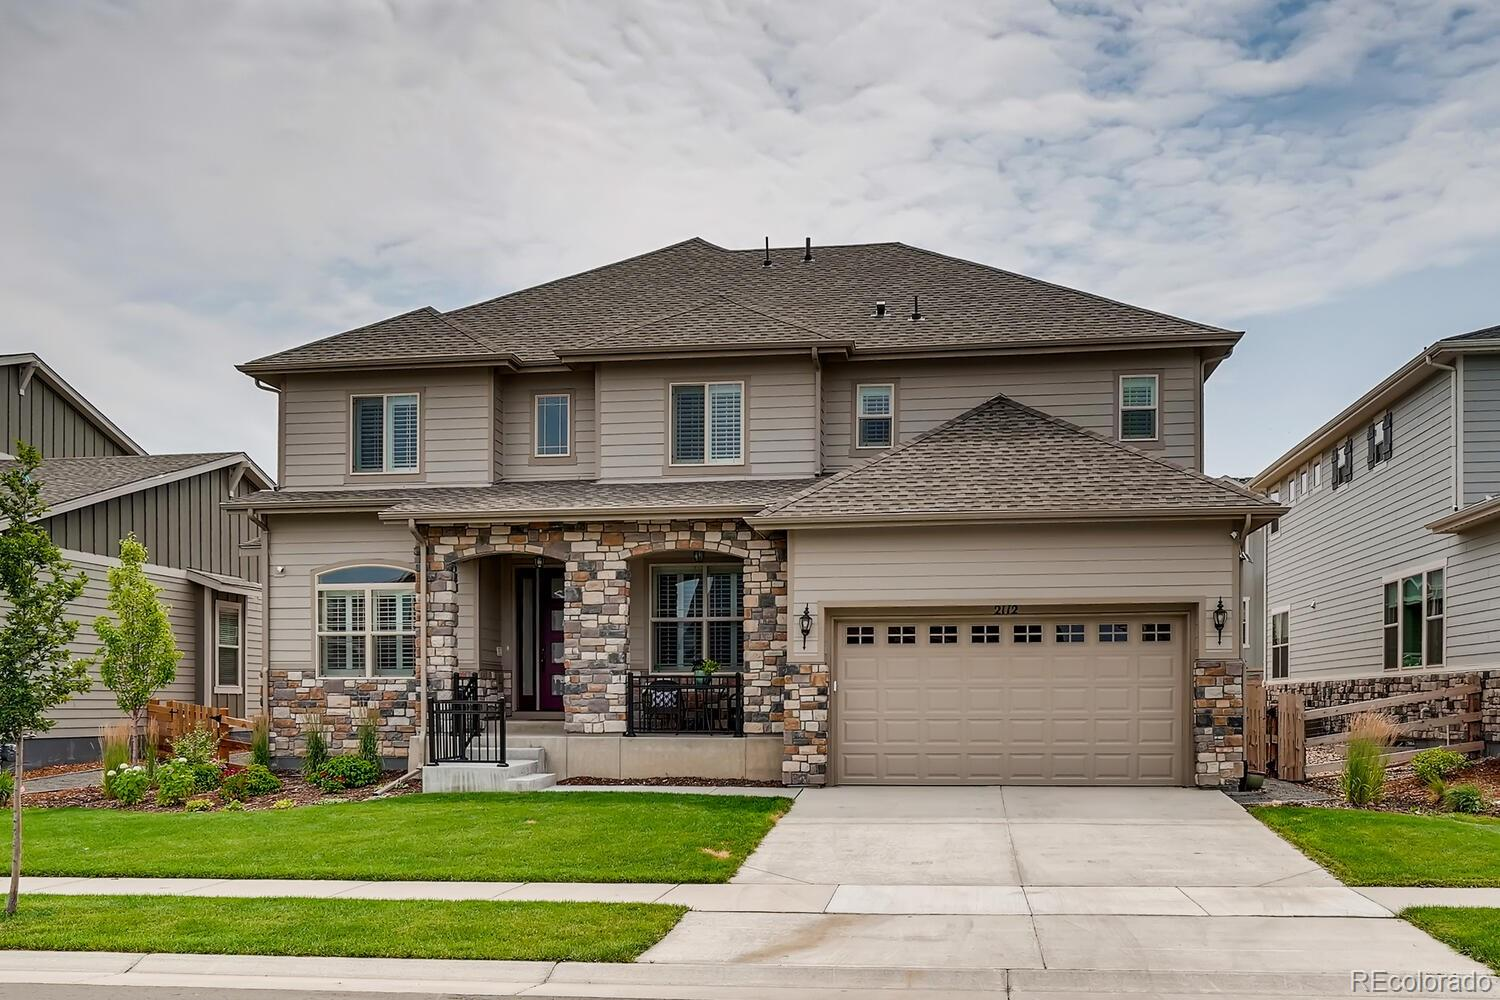 Why wait for new when this stunning home is available now?!  Gorgeous Yuma II 2-story by Toll Brothers features 5 bedrooms (4 upper / 1 conforming bsmt), 4.5 baths (3 upper / 1 main / 1 bsmt), 2-story great room, gourmet kitchen w/spacious breakfast nook, formal dining room, study, finished basement and 3 car garage (2 + 1 tandem). Meticulously maintained - pride of ownership throughout.  This home could grace the cover of a magazine. Beautiful upgrades and finishes including updated lighting, plantation shutters, landscaping, Elfa closet organizers, built in stereo speakers and more.  The finished basement is perfect for guests or teen wanting their own space. Ceiling fans, central air, solar panels, an energy efficient furnace and gas fireplace w/stacked stone surround keep this home comfortable all year long.  The many windows allow the natural sunlight to cascade in - bright and cheerful. Perfect for entertaining inside and out. This home lives large.  Enjoy relaxing on the back flagstone patio or people watching from the covered front porch. Walking distance to Meadowlark school and Star Meadows Park.  Enjoy the walking trails with beautiful mountain views.  Perfect and move in ready. Close to dining, shopping, entertainment and other amenities. Solar panels owned by seller and installed by Namaste Solar. Low HOA. Don't miss your opportunity - Welcome Home!